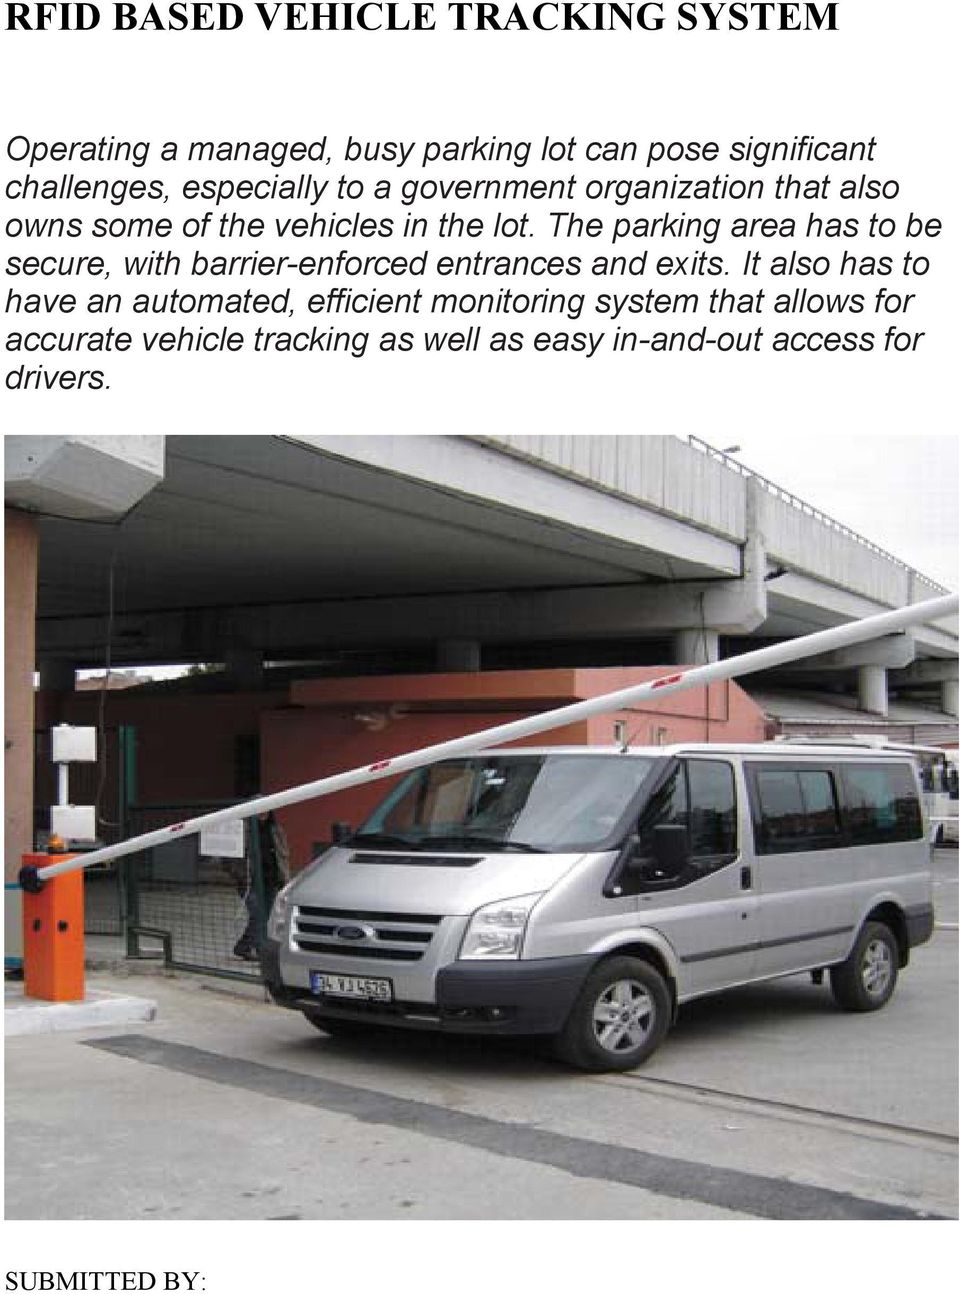 The parking area has to be secure, with barrier-enforced entrances and exits.